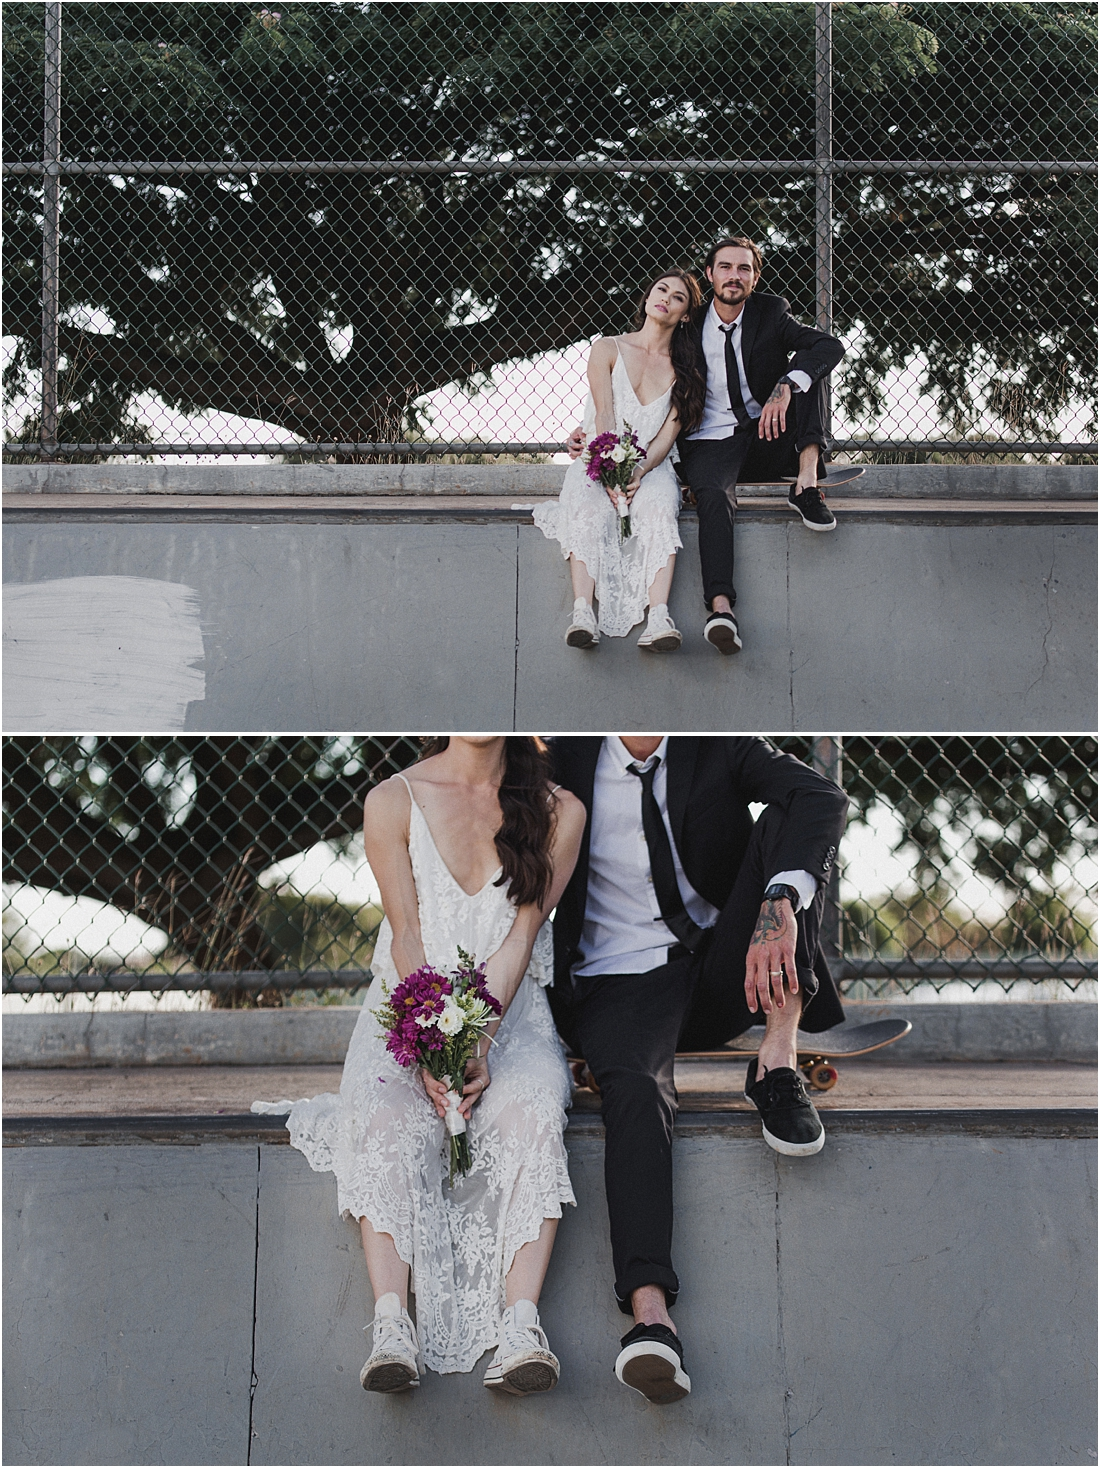 a-skateboard-wedding-2